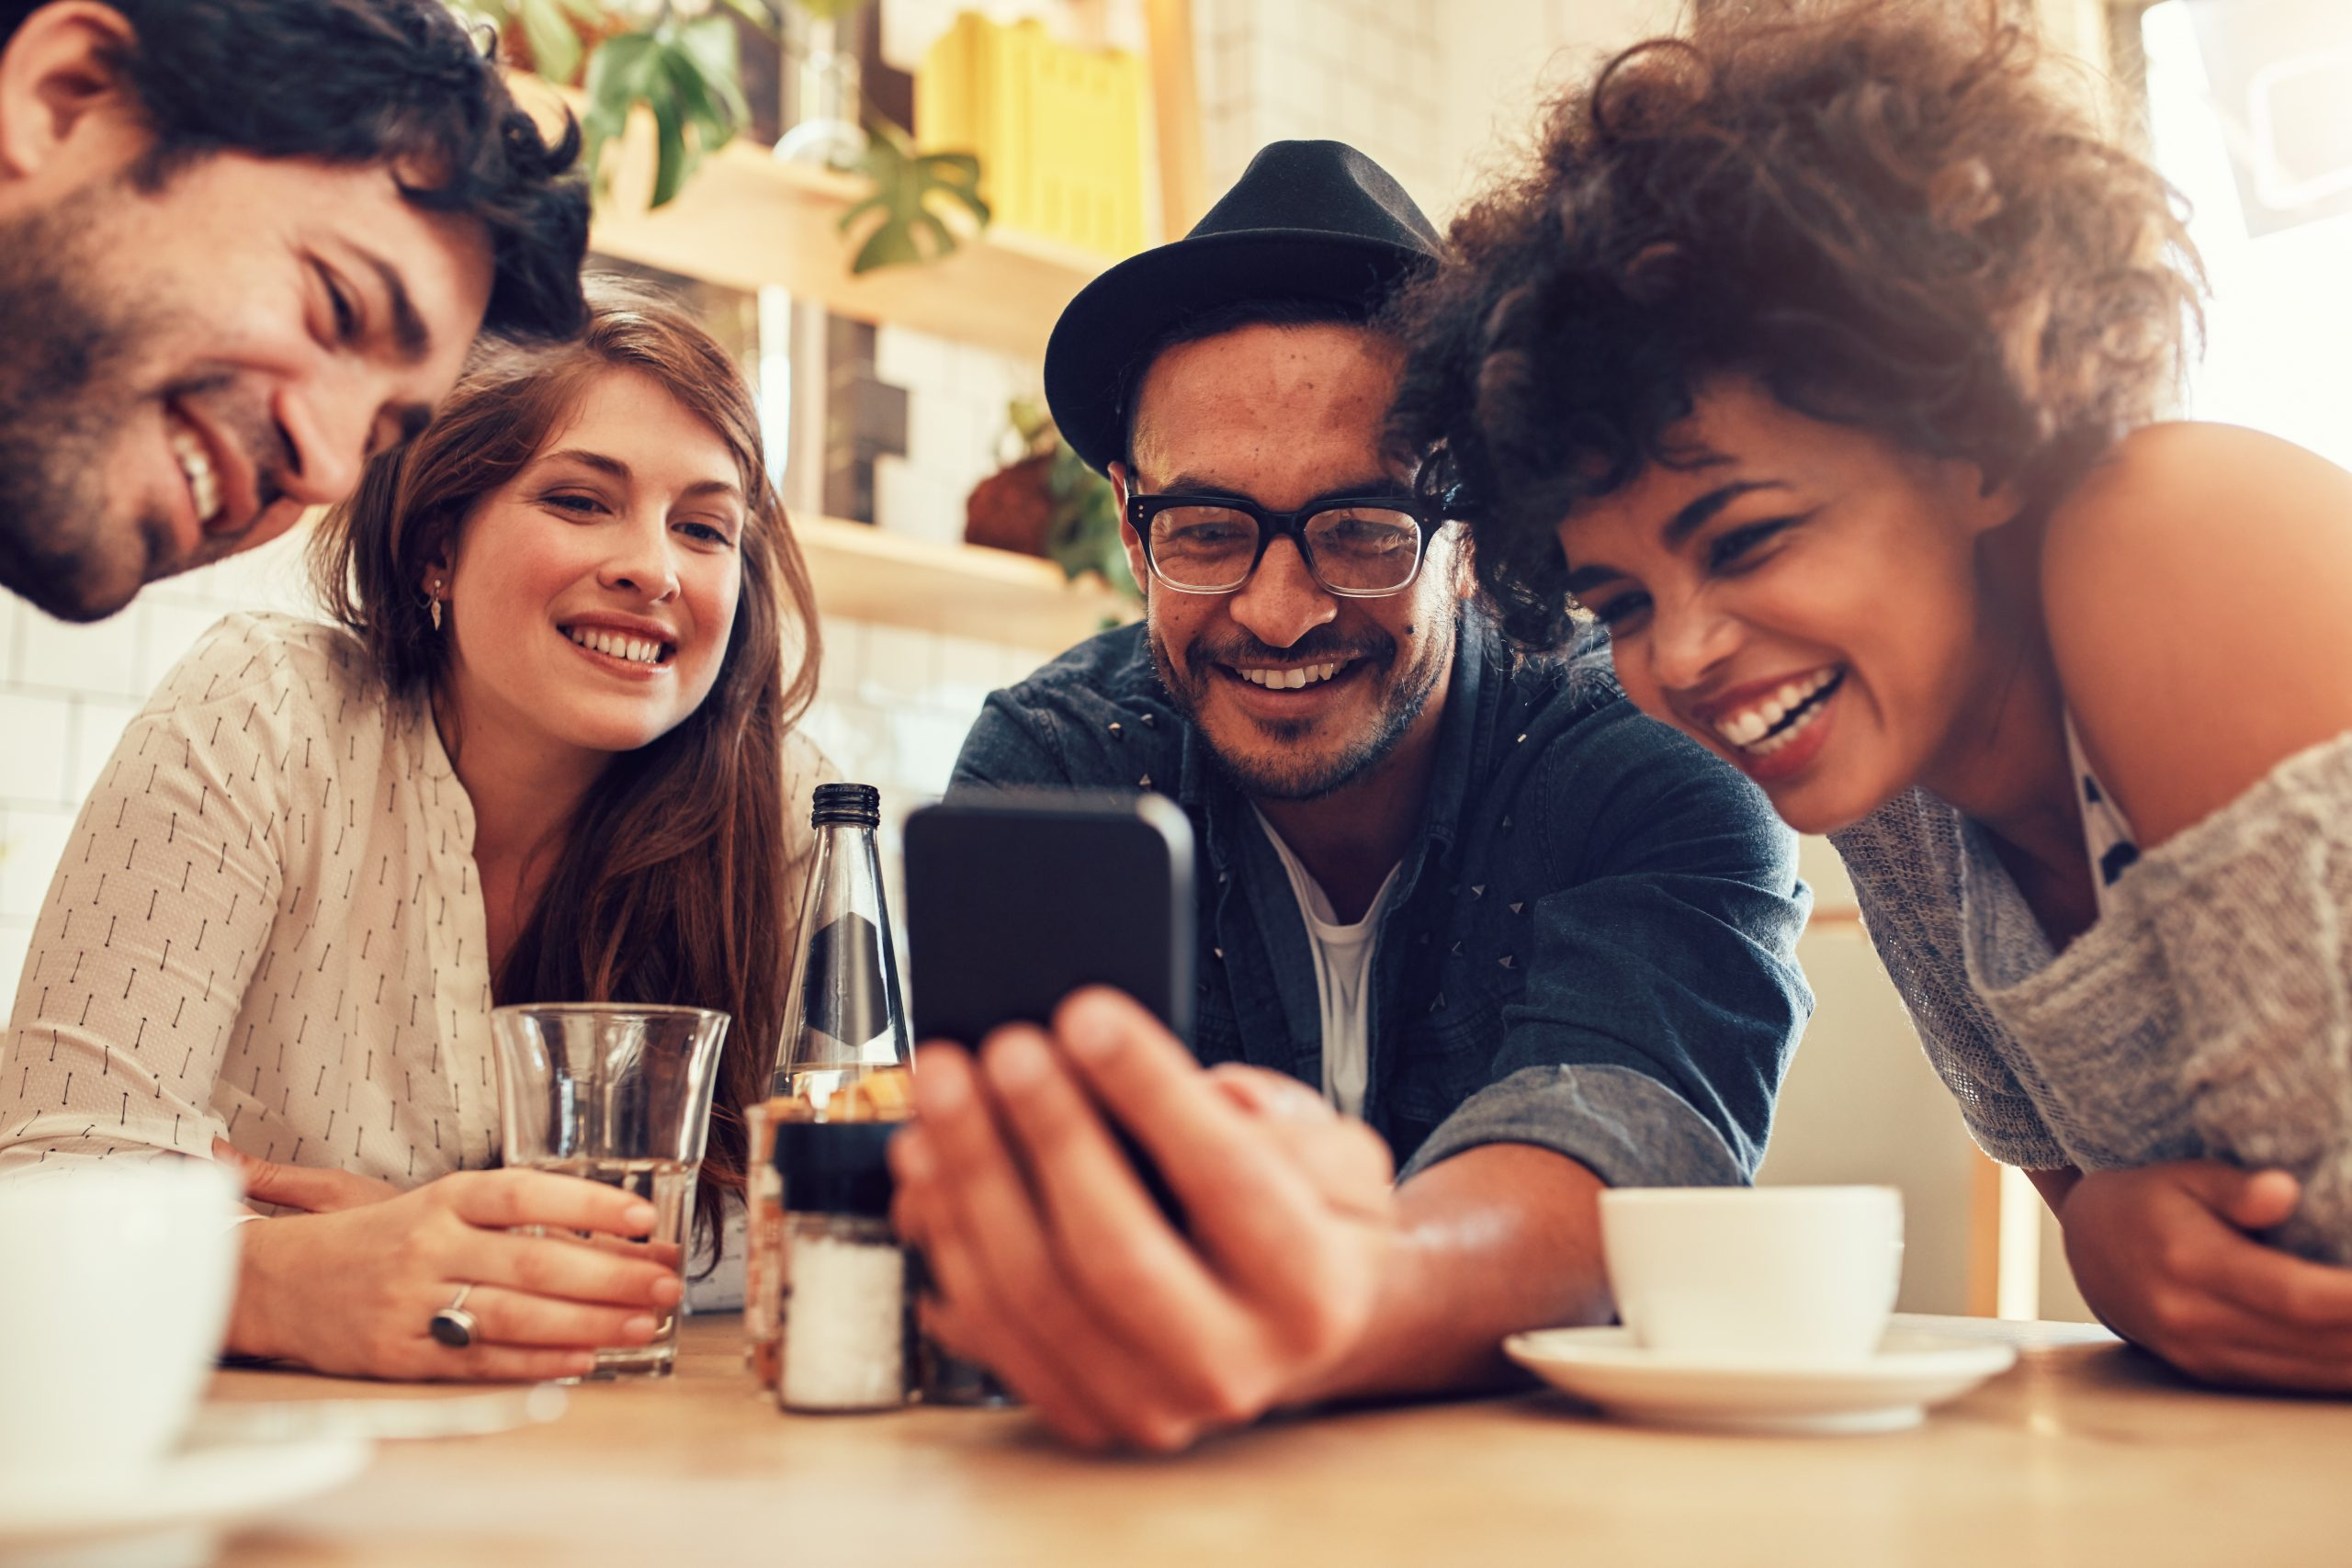 Group of friends sitting together in a cafe looking at mobile phone